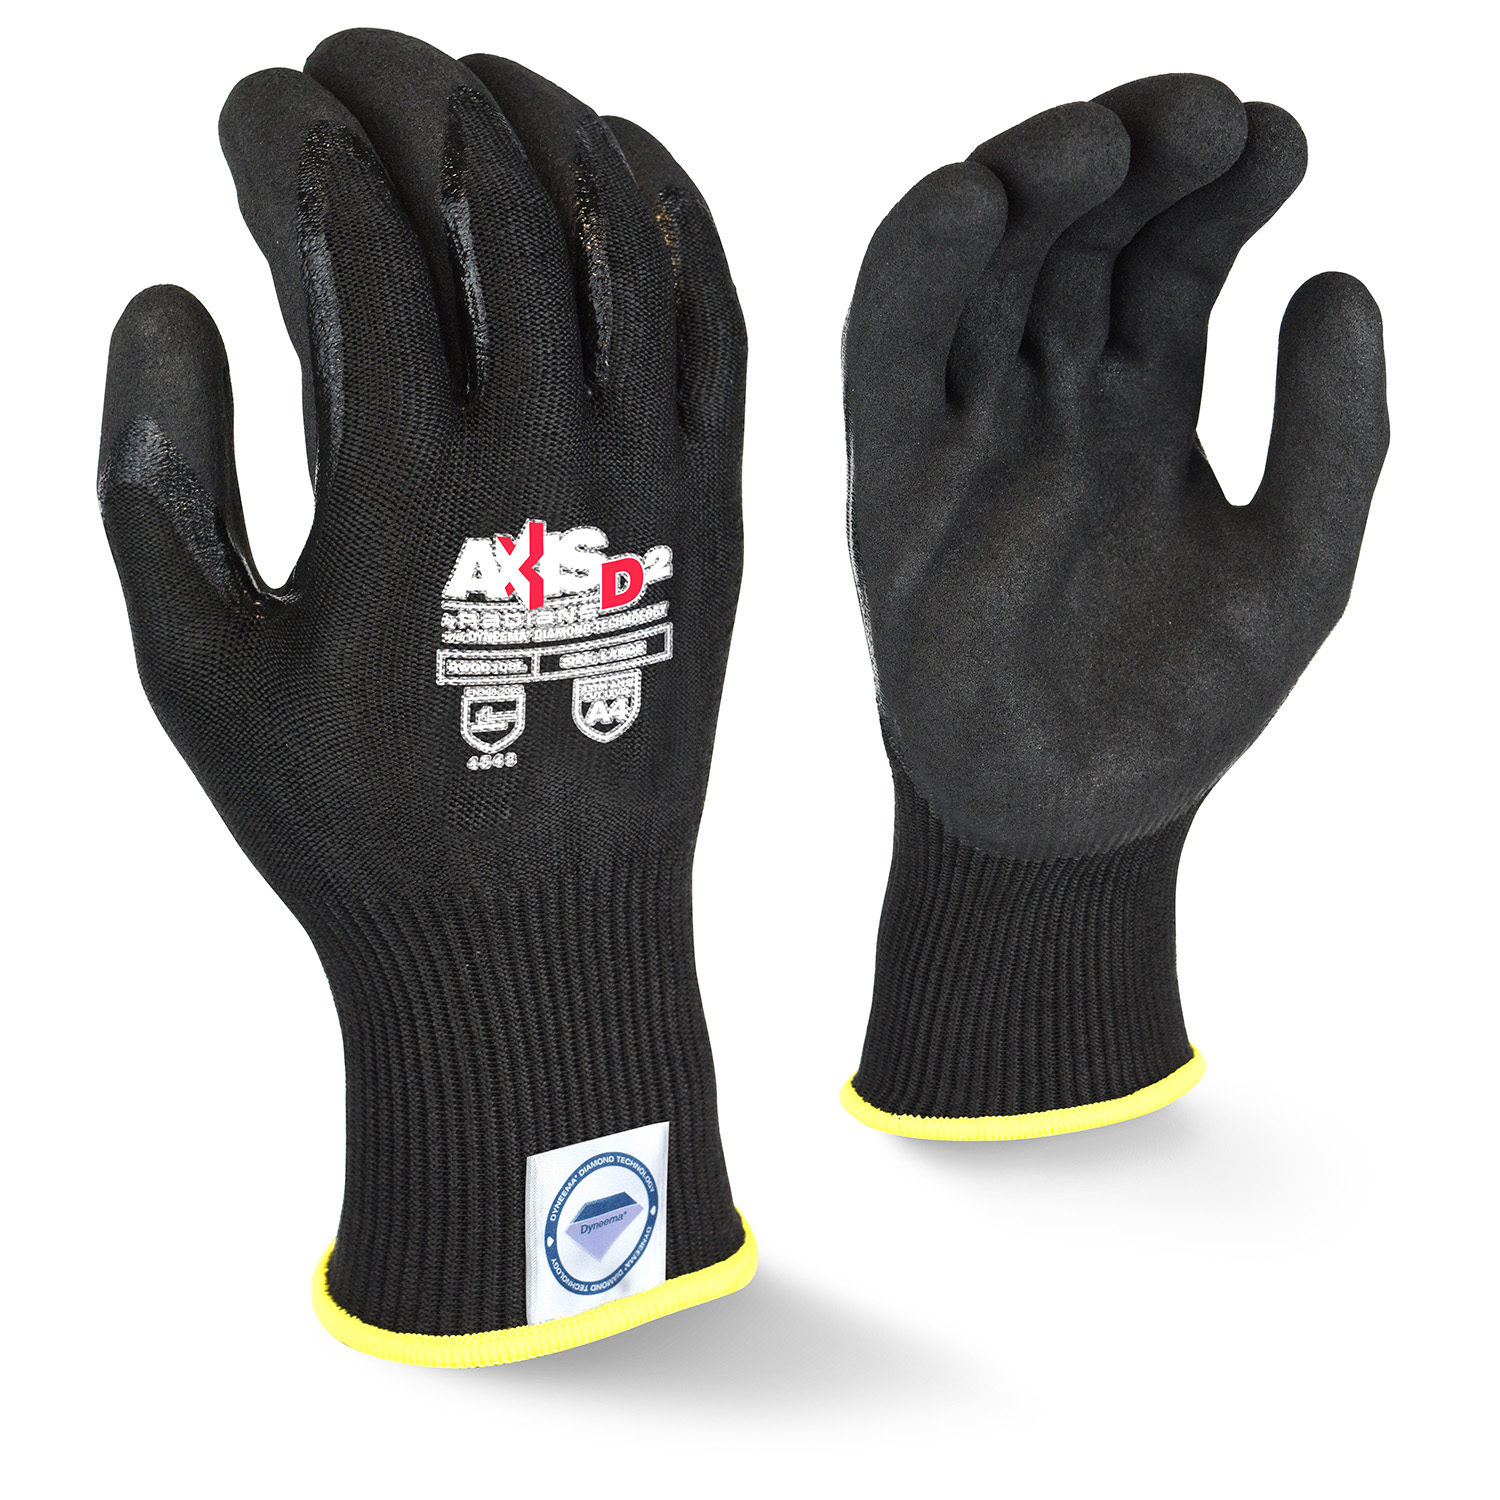 Radians RWGD108 AXIS D2™ Dyneema® Cut Protection Level A4 Glove